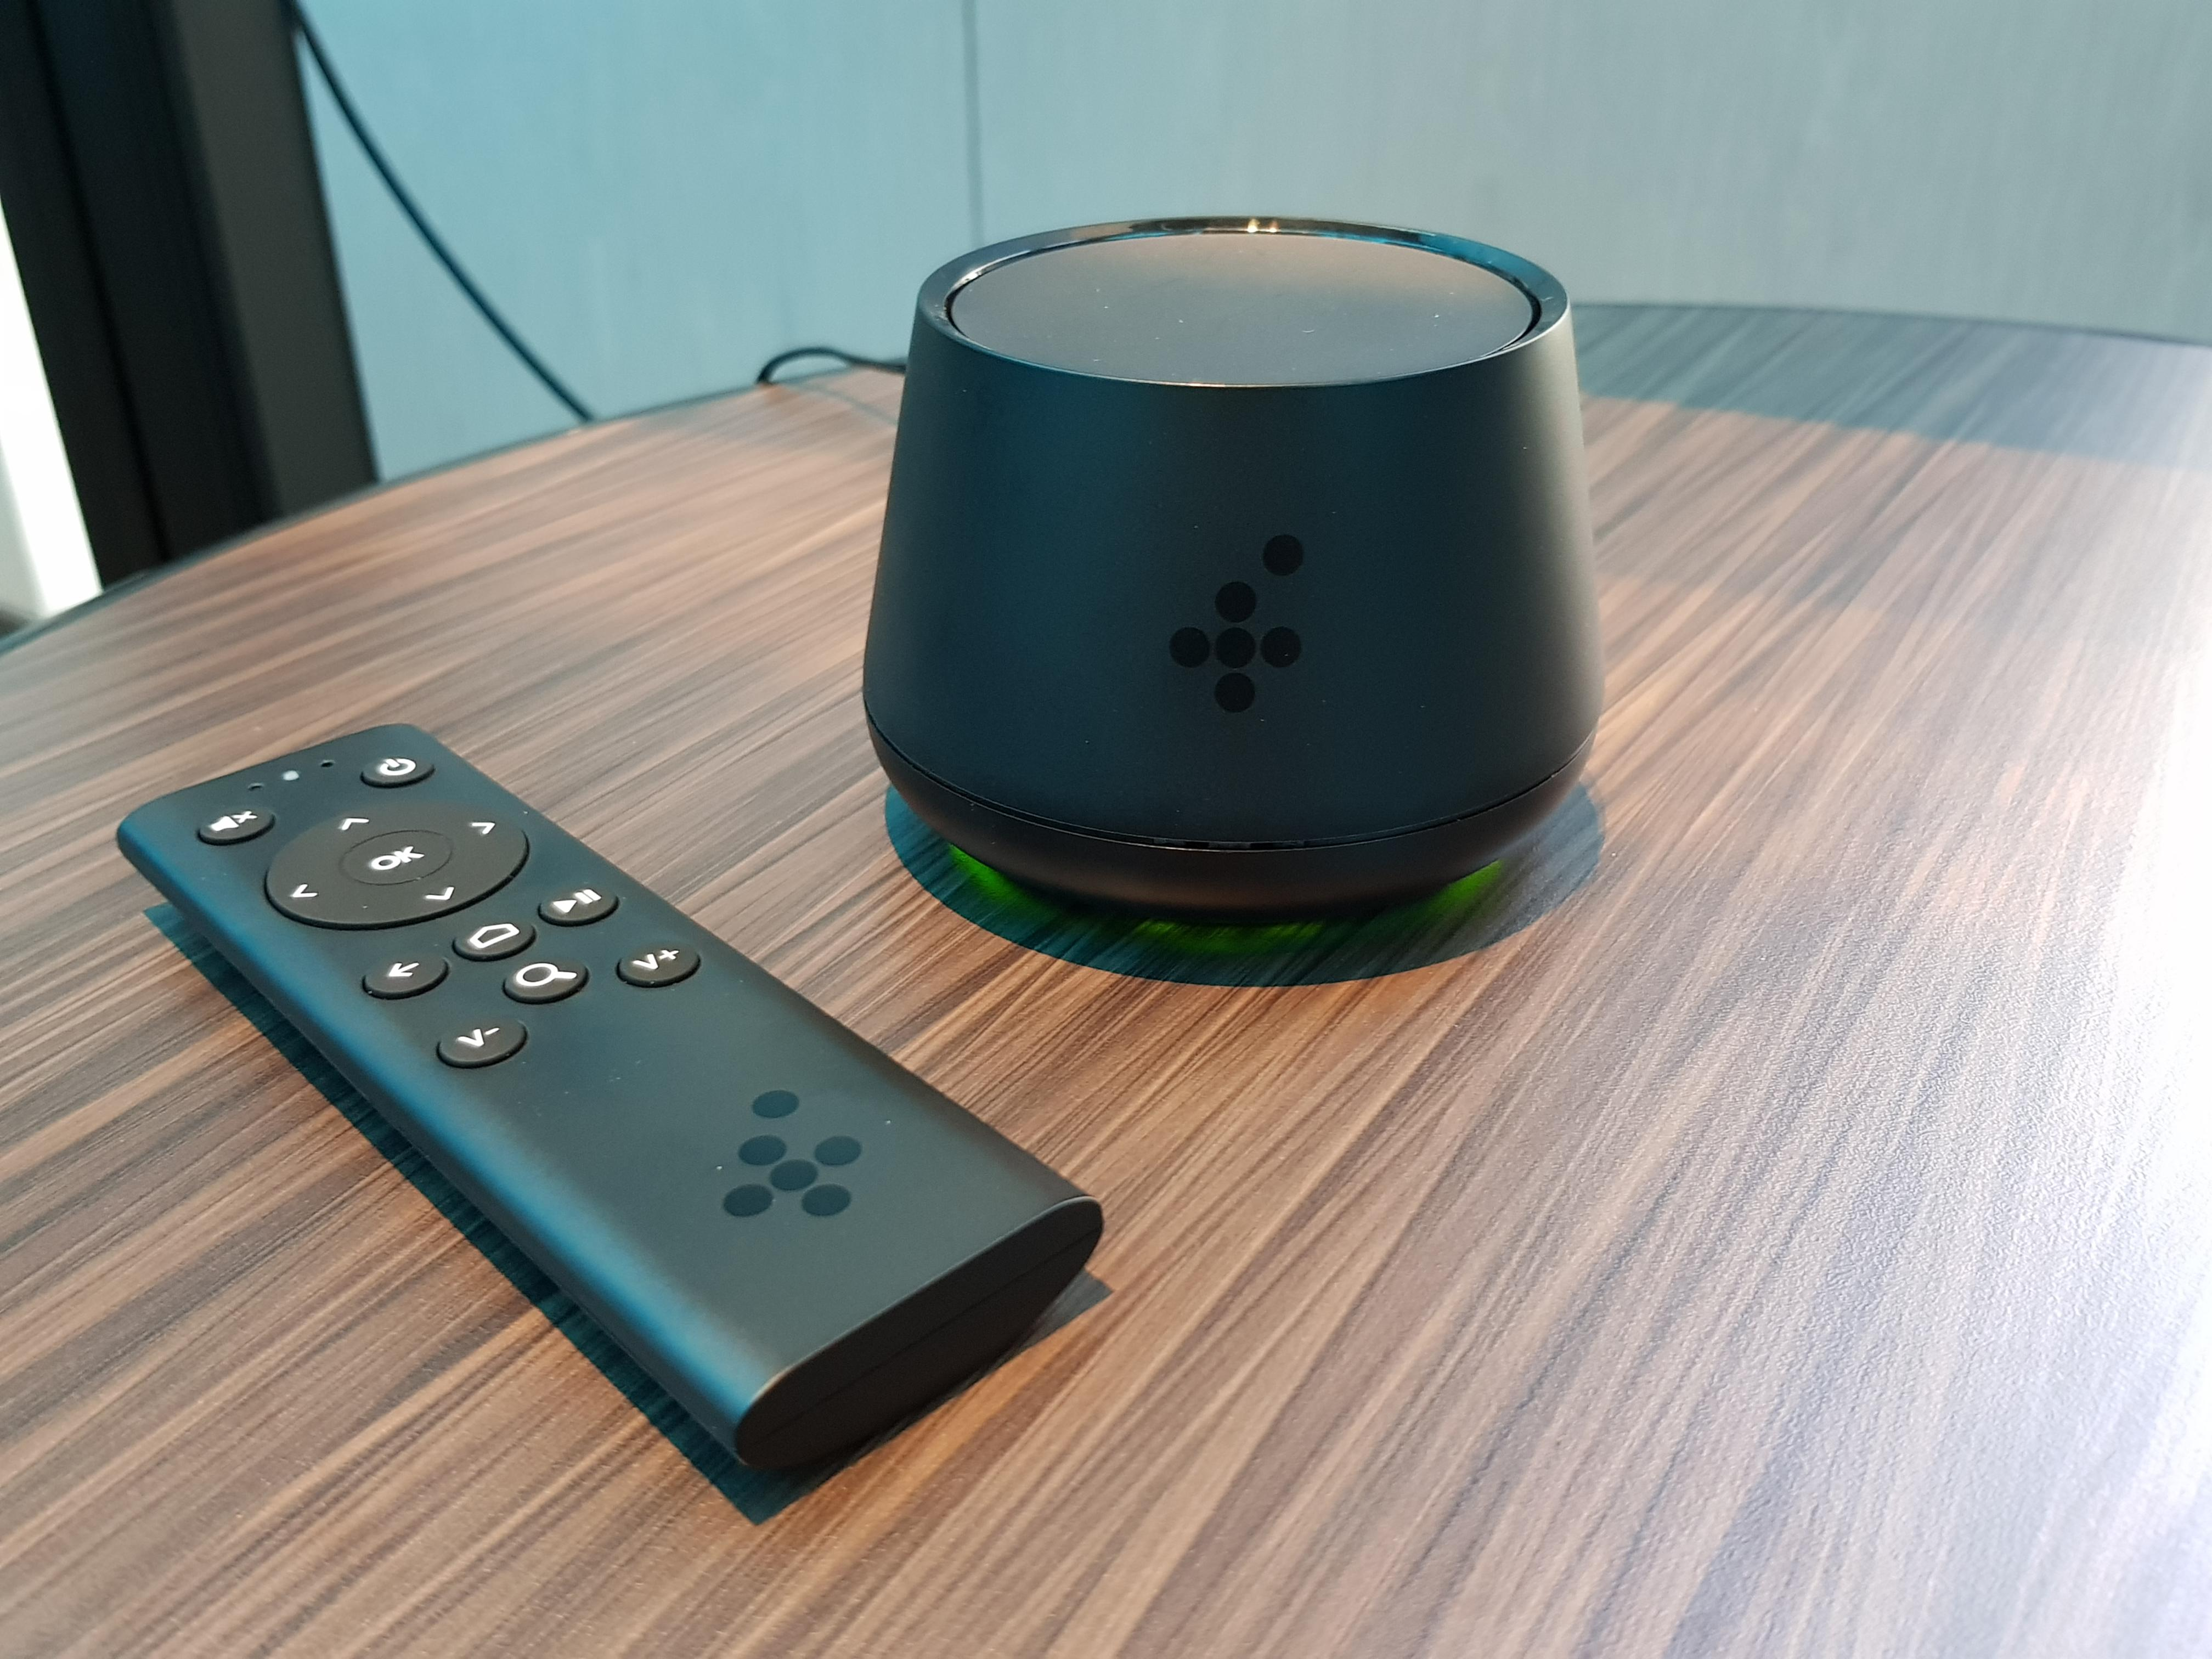 <p>With a 10cm footprint, the Foxtel Now Box is decidedly smaller than Foxtel's regular iQ set-top boxes.&nbsp;</p>